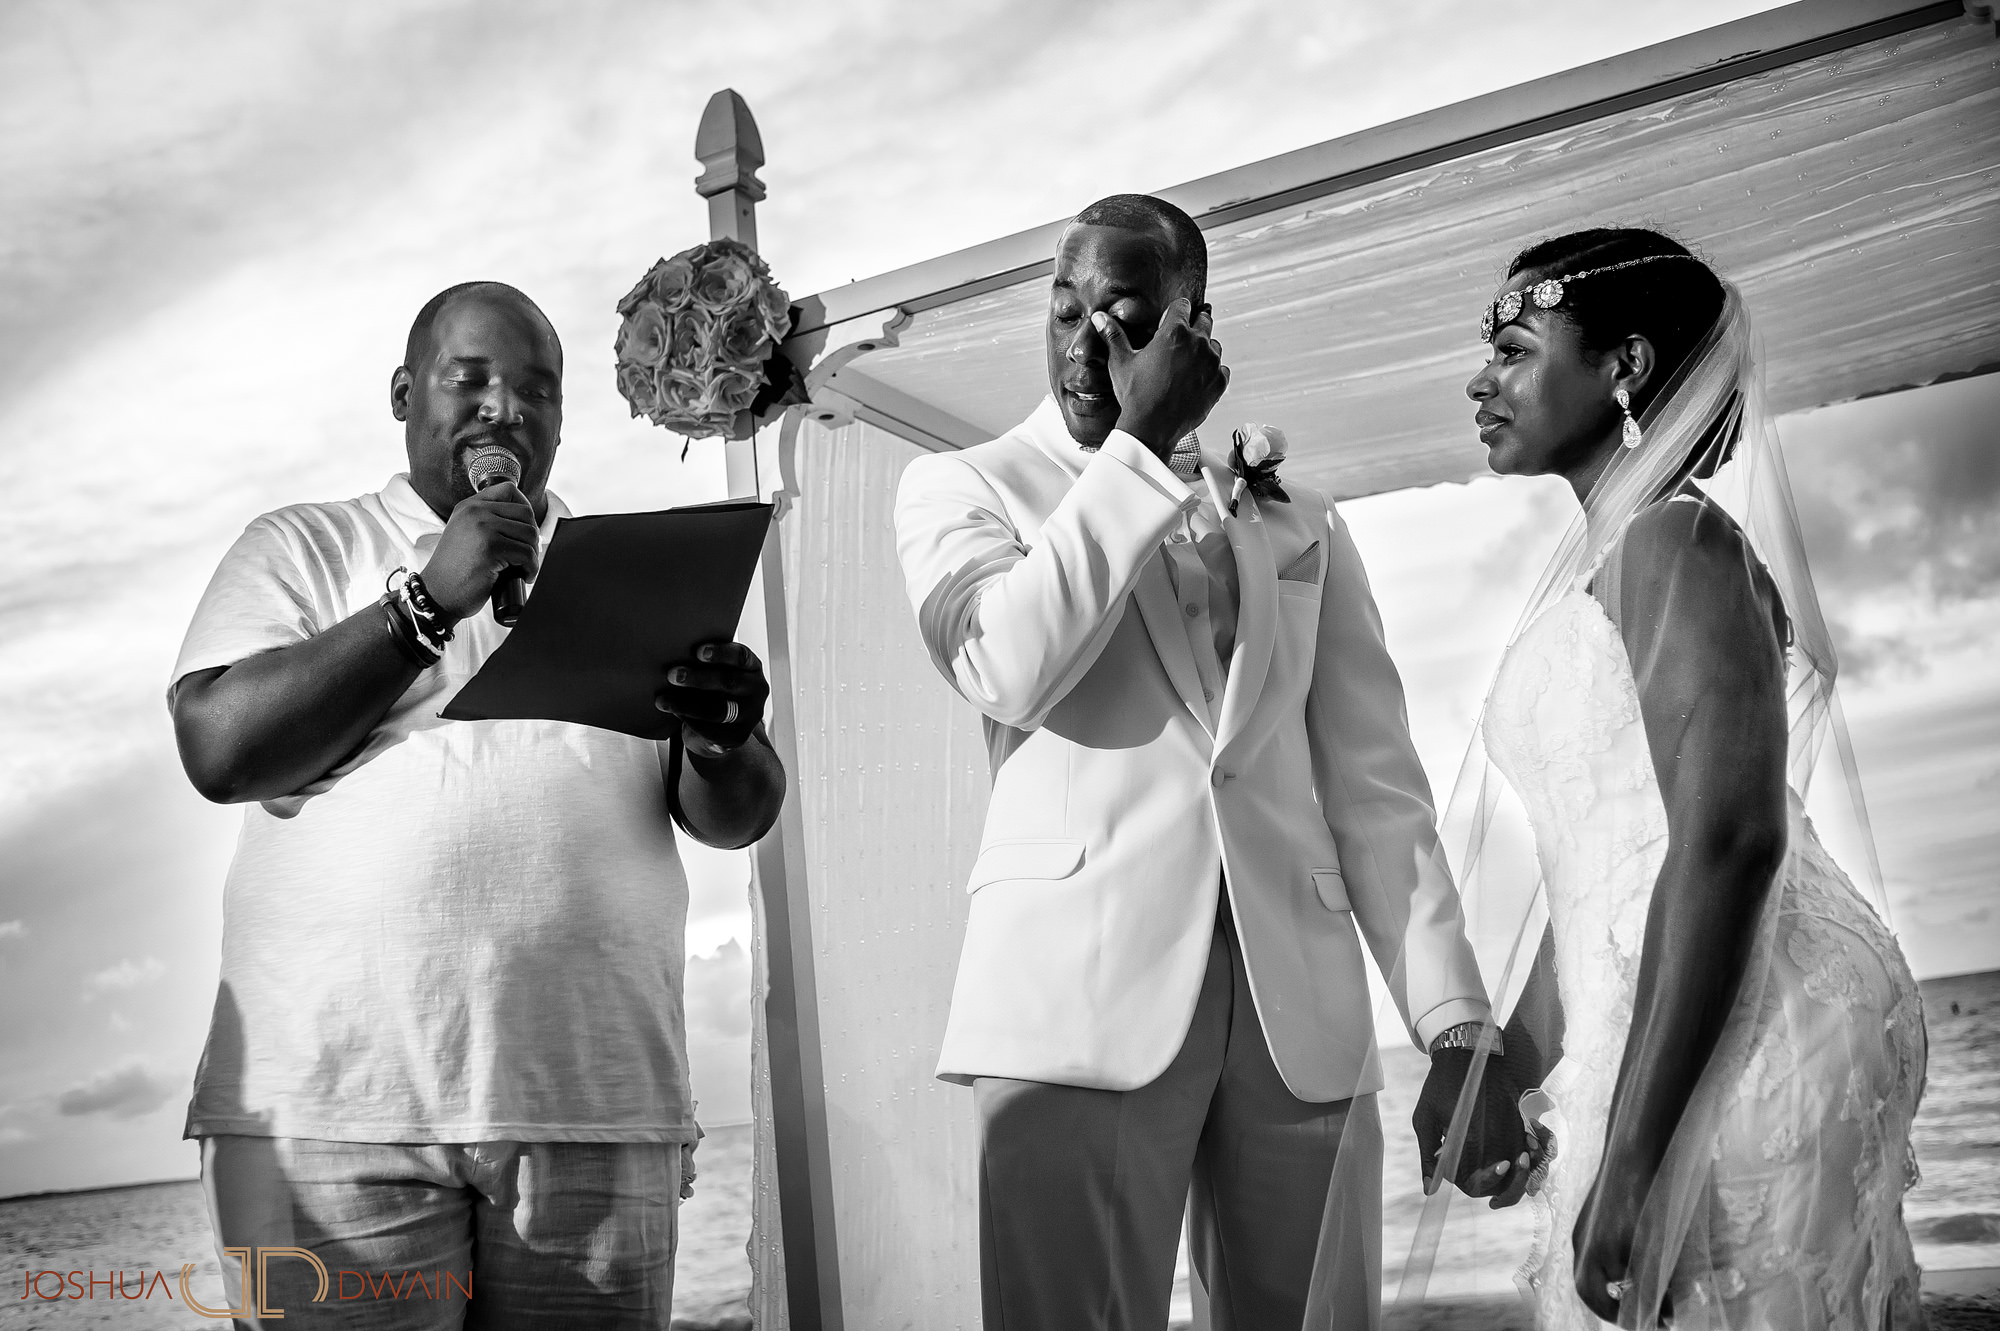 penelope-joseph-028-beaches-resort-turks-and-caicos-providenciales-wedding-photographer-joshua-dwain